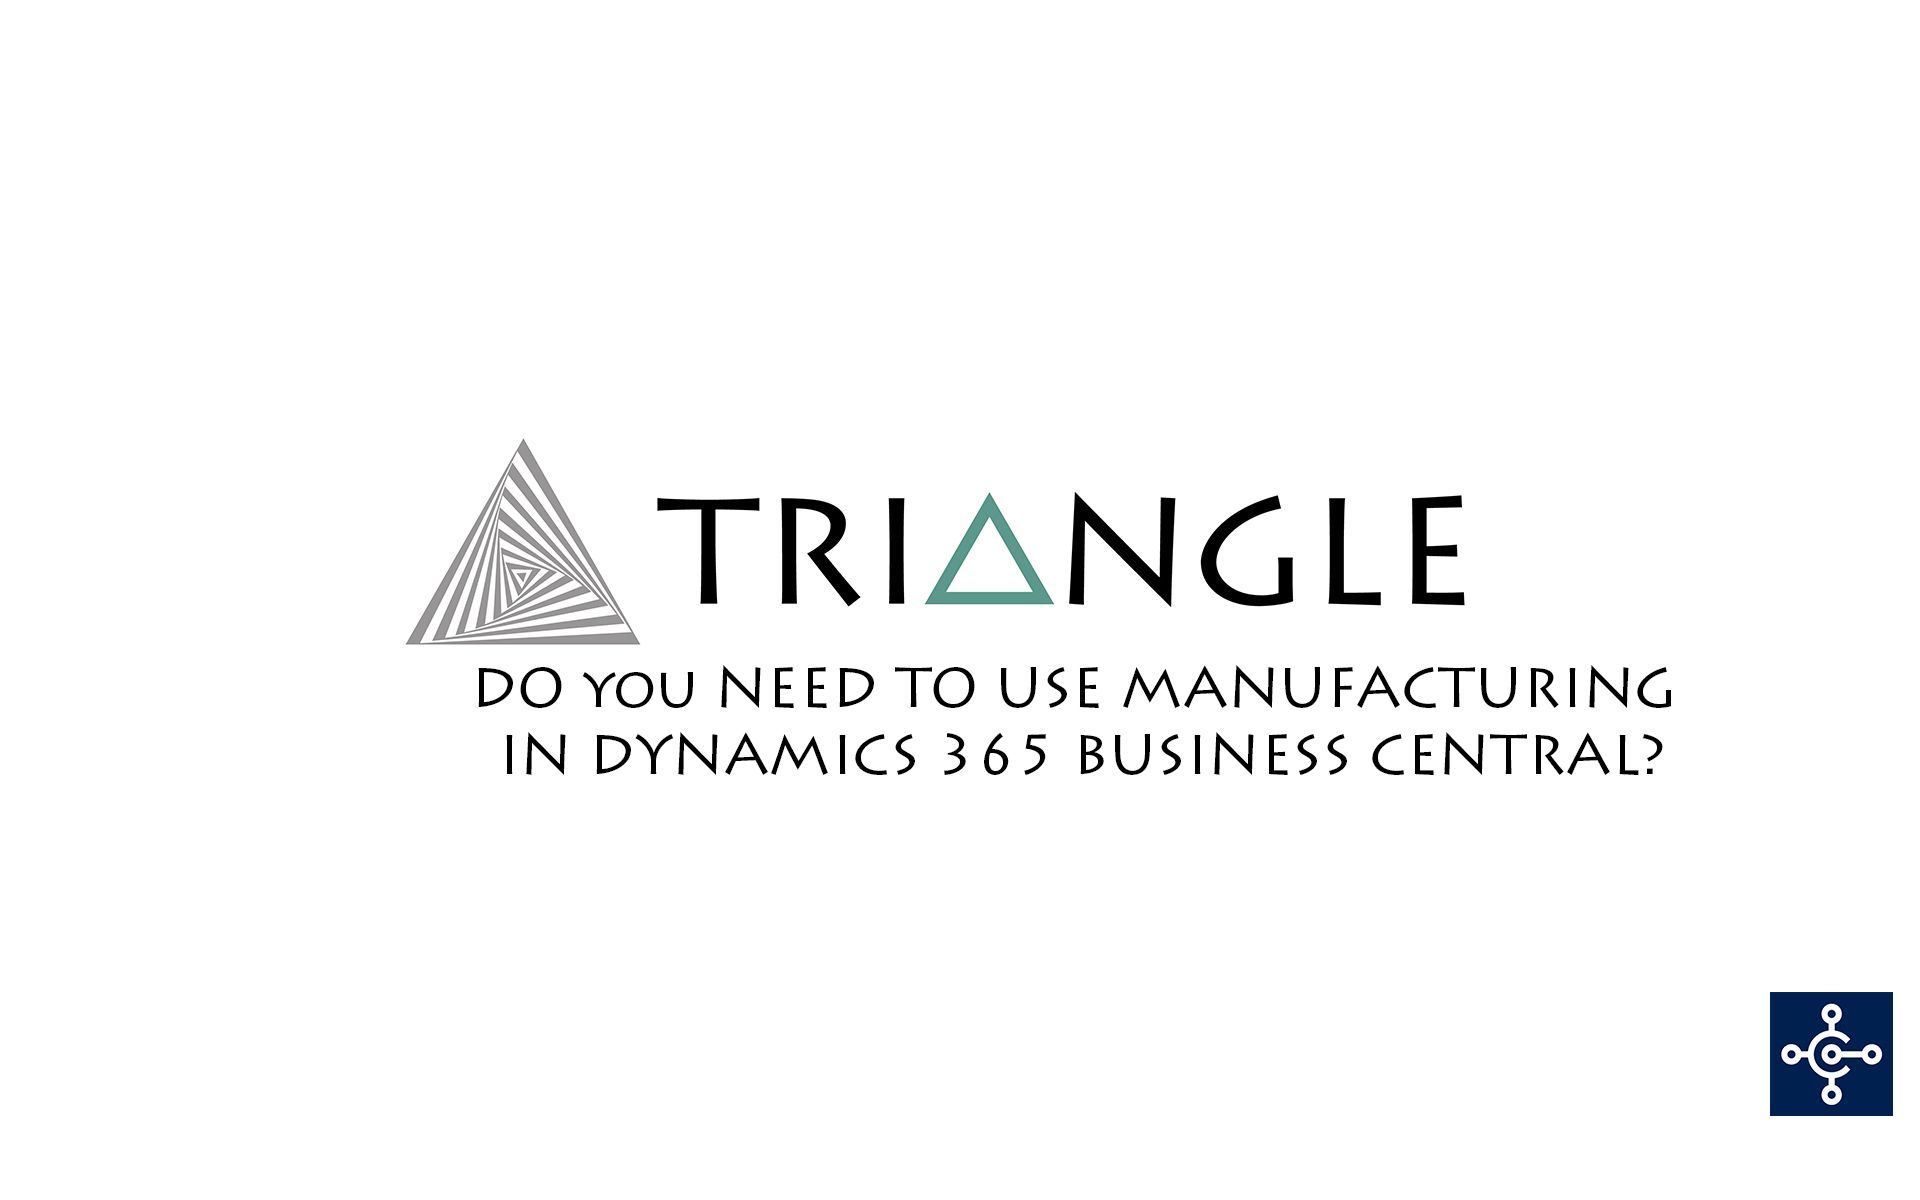 Manufacturing Dynamics 365 Business Central